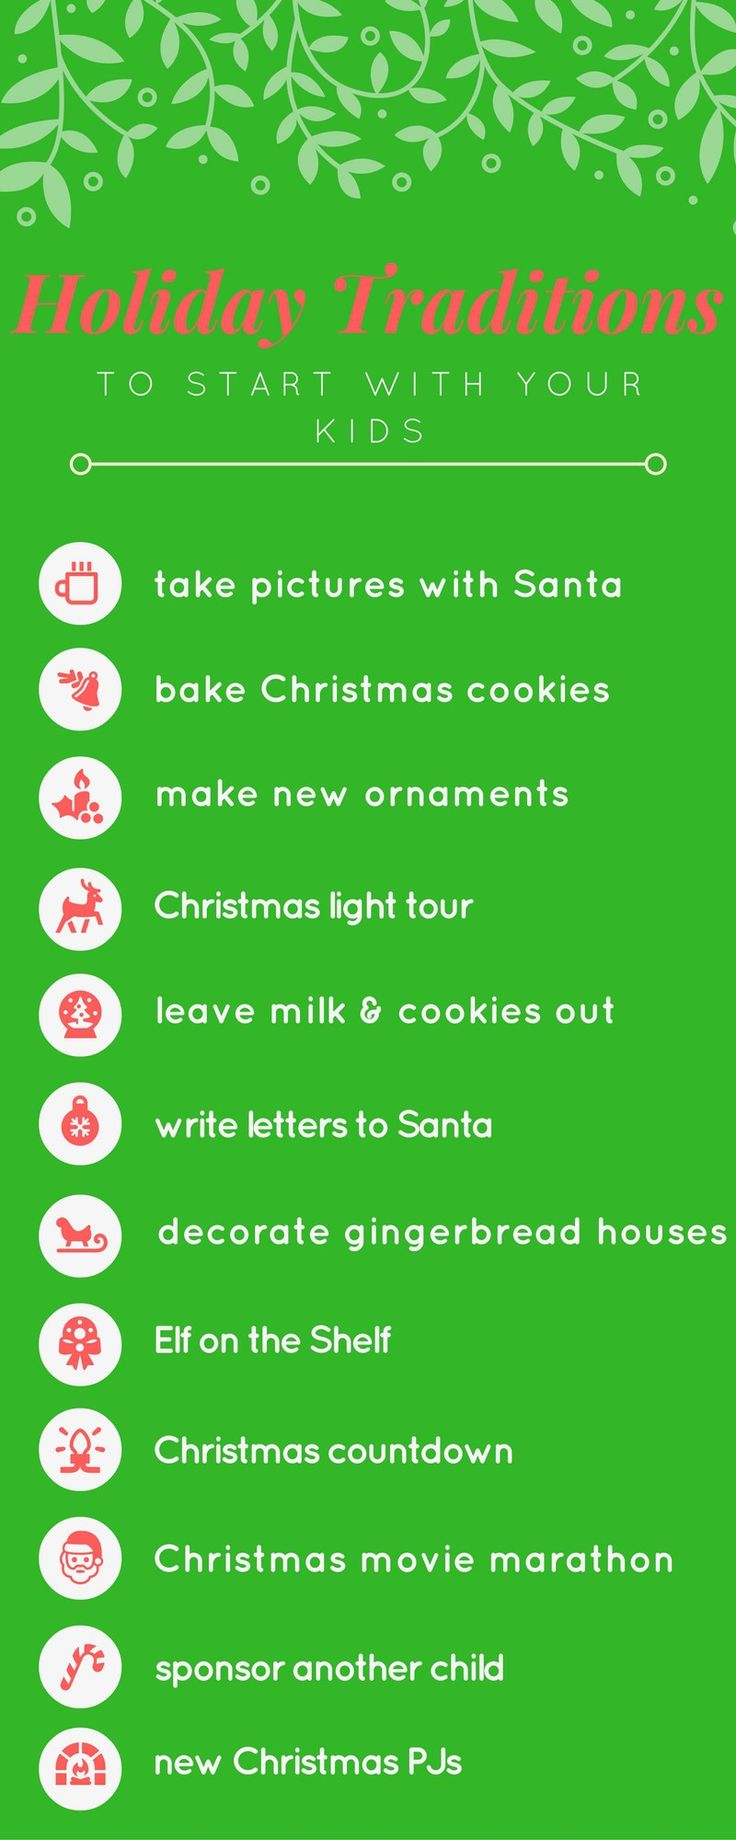 Beau 13 Holiday Traditions Your Kids Will Never Forget